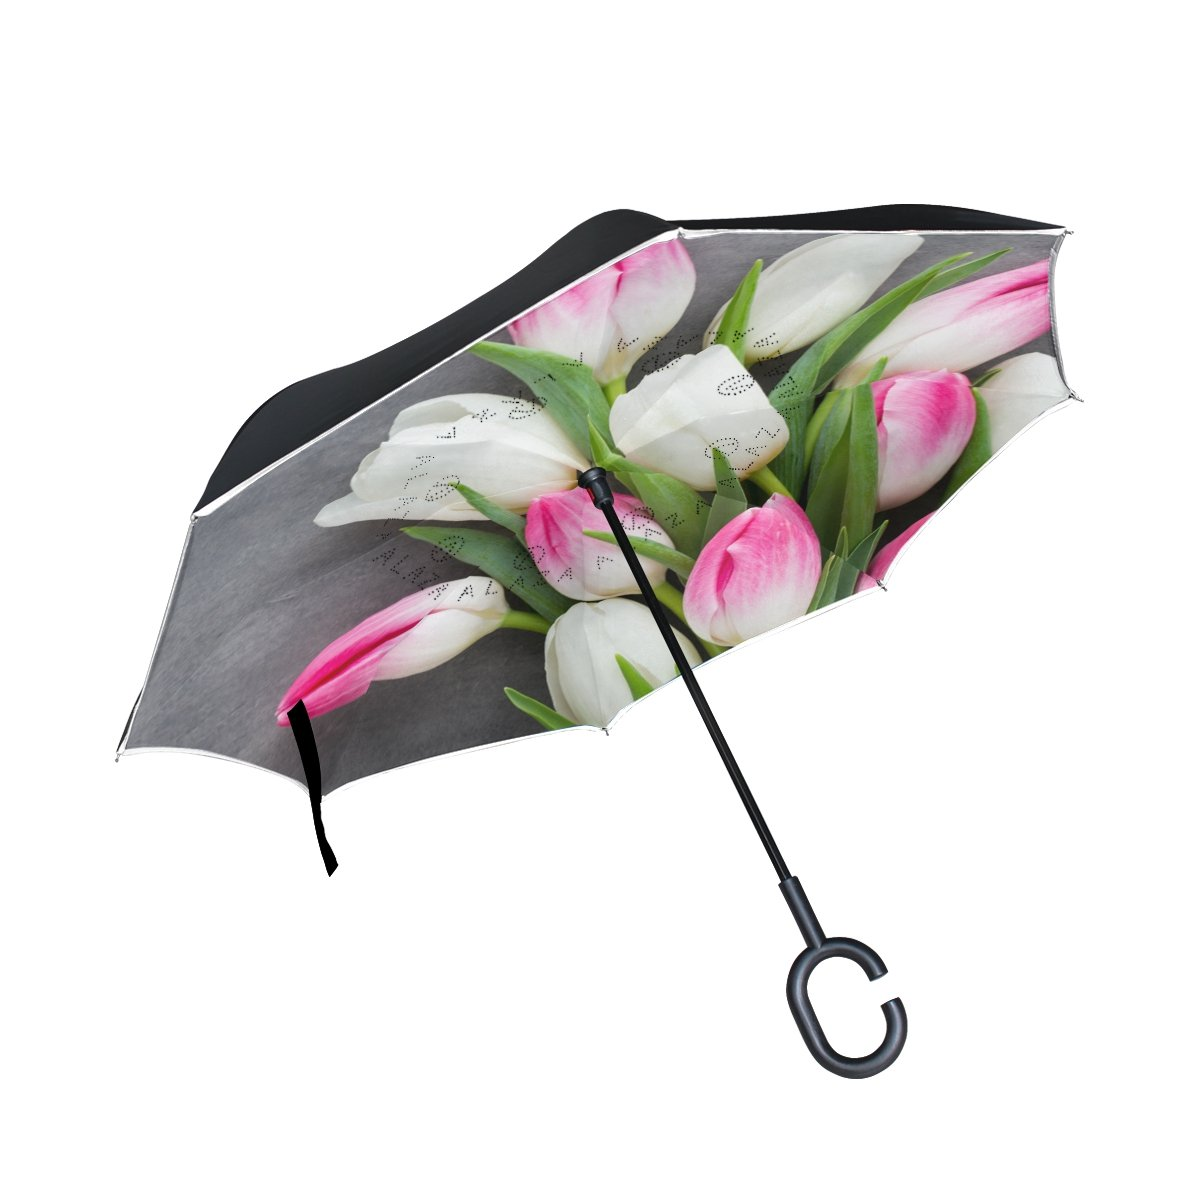 Double Layer Inverted Umbrella Reverse Folding Umbrella C Shape Handle Golf Umbrella Pink Tulip